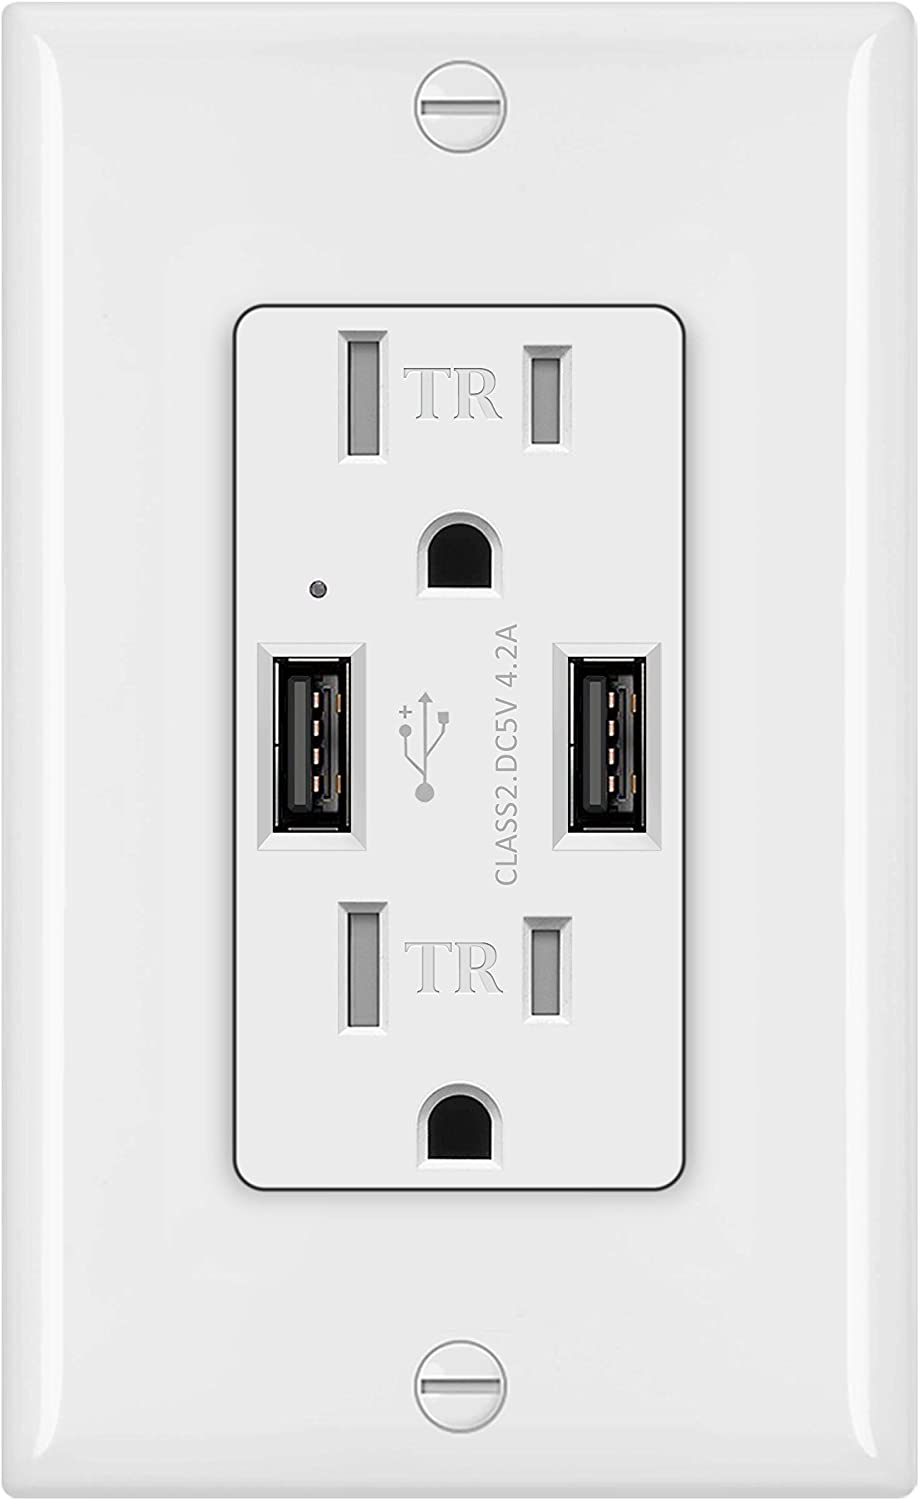 BESTTEN 15 Amp Direct stock discount USB Wall Charger Cash special price 4.2A Receptacle Outlet